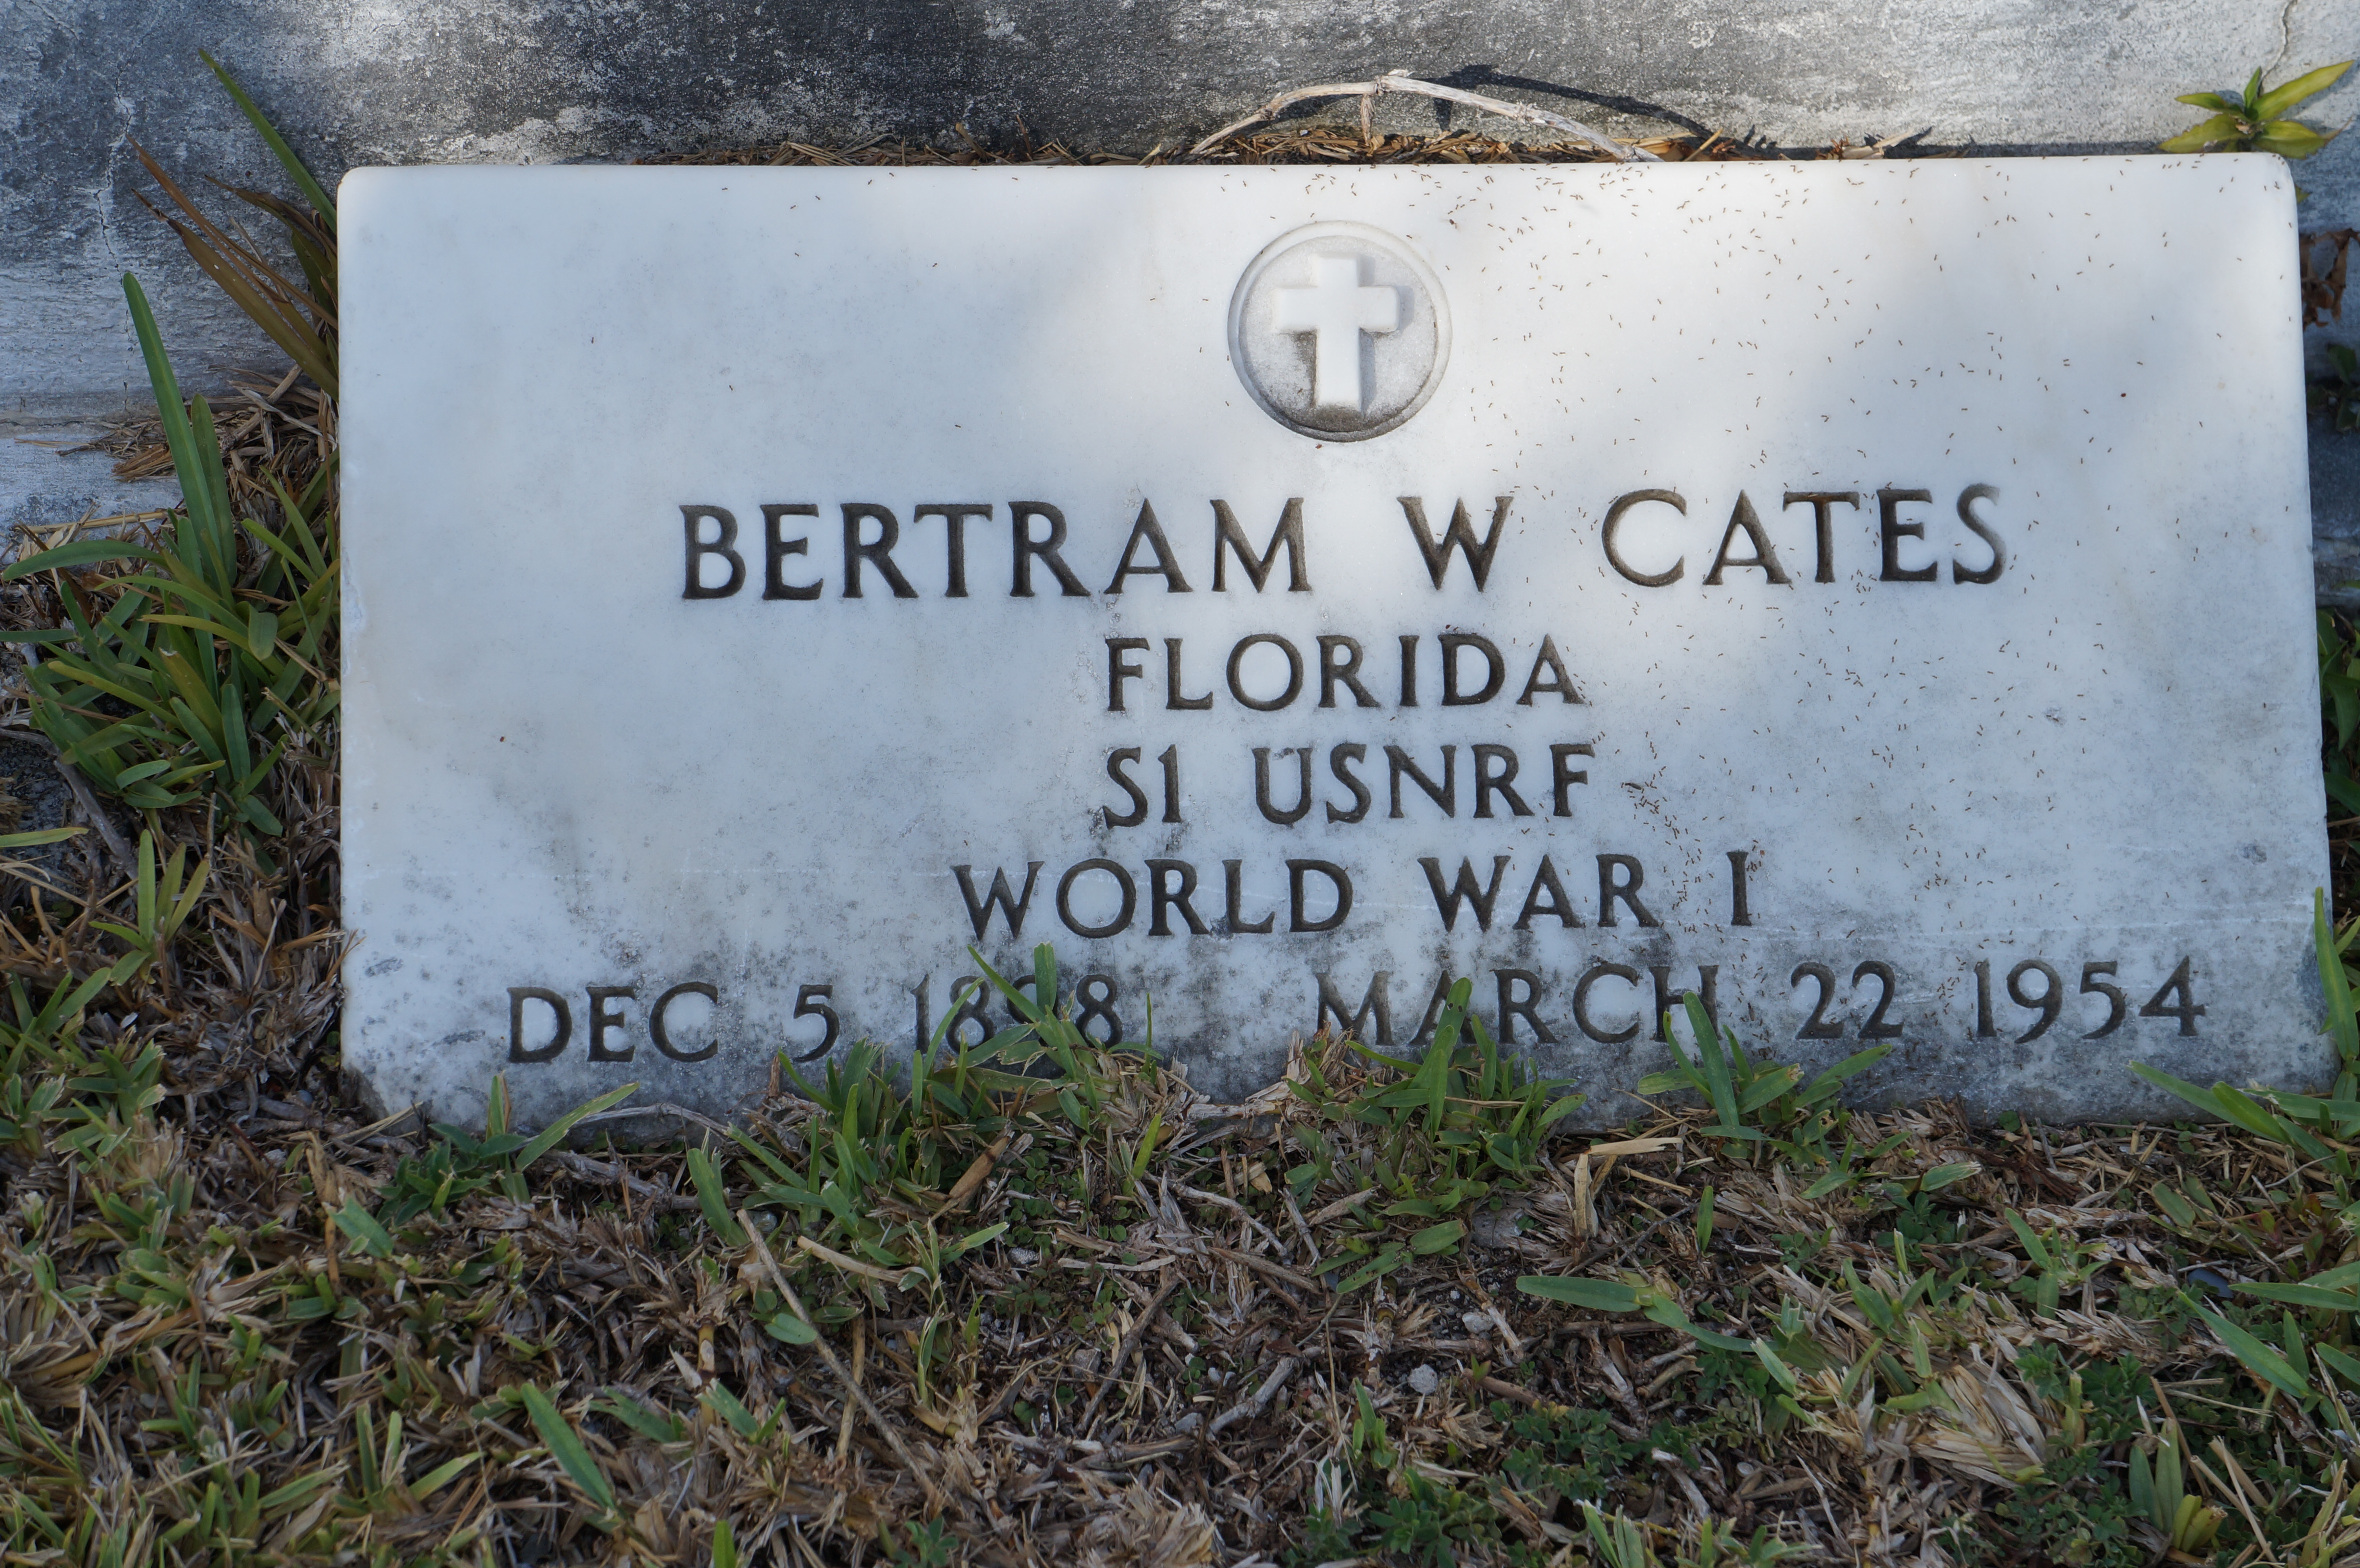 Bertram Cates USNRF WWI 1898-1954 2